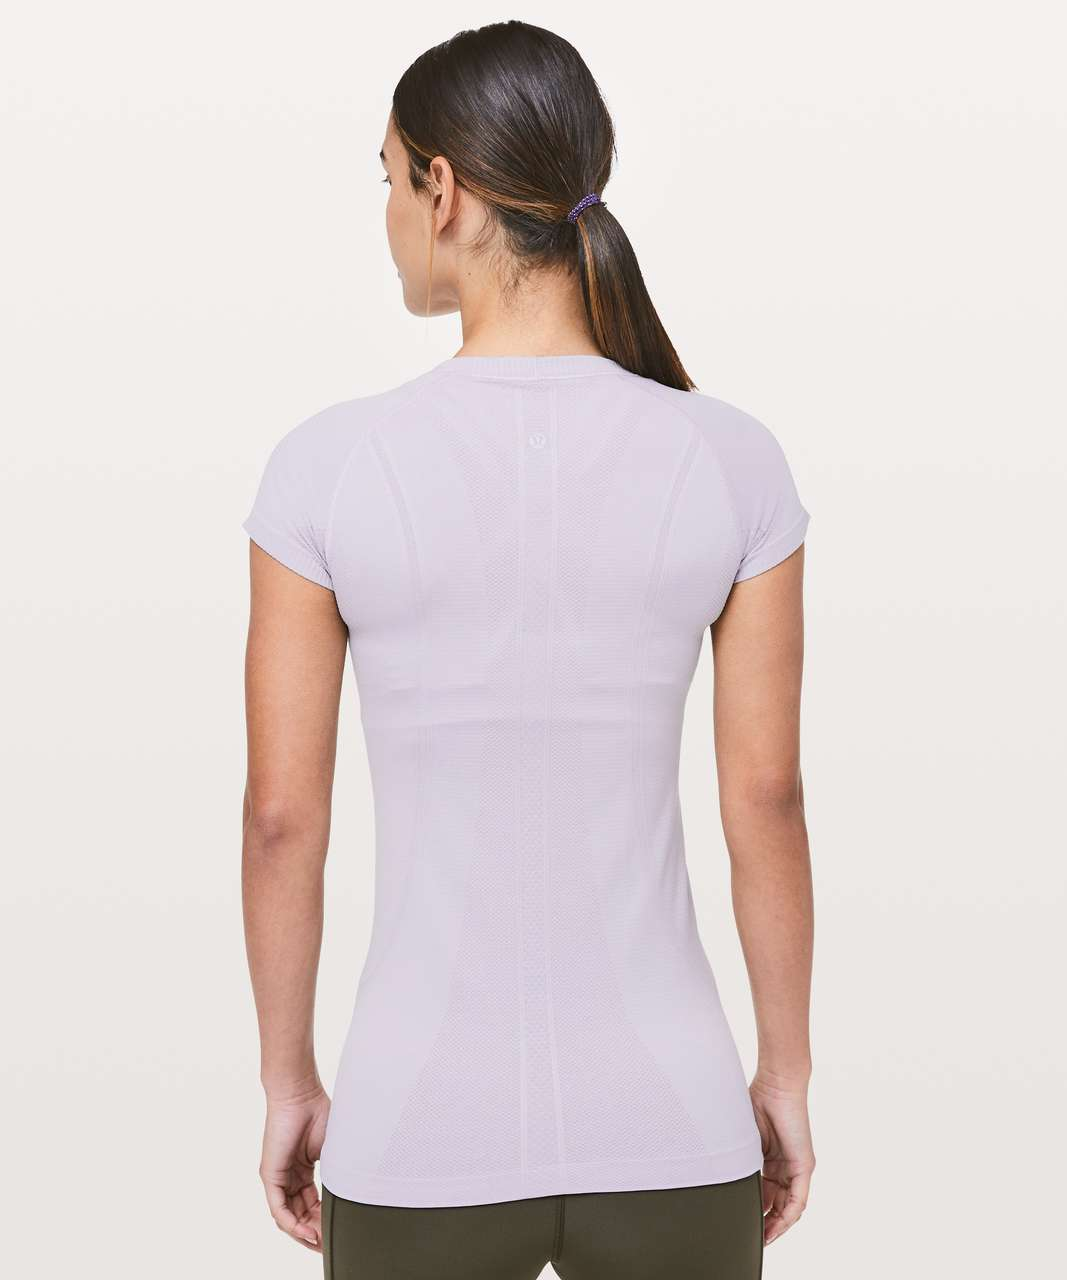 Lululemon Swiftly Tech Short Sleeve Crew - Silver Lilac / Silver Lilac